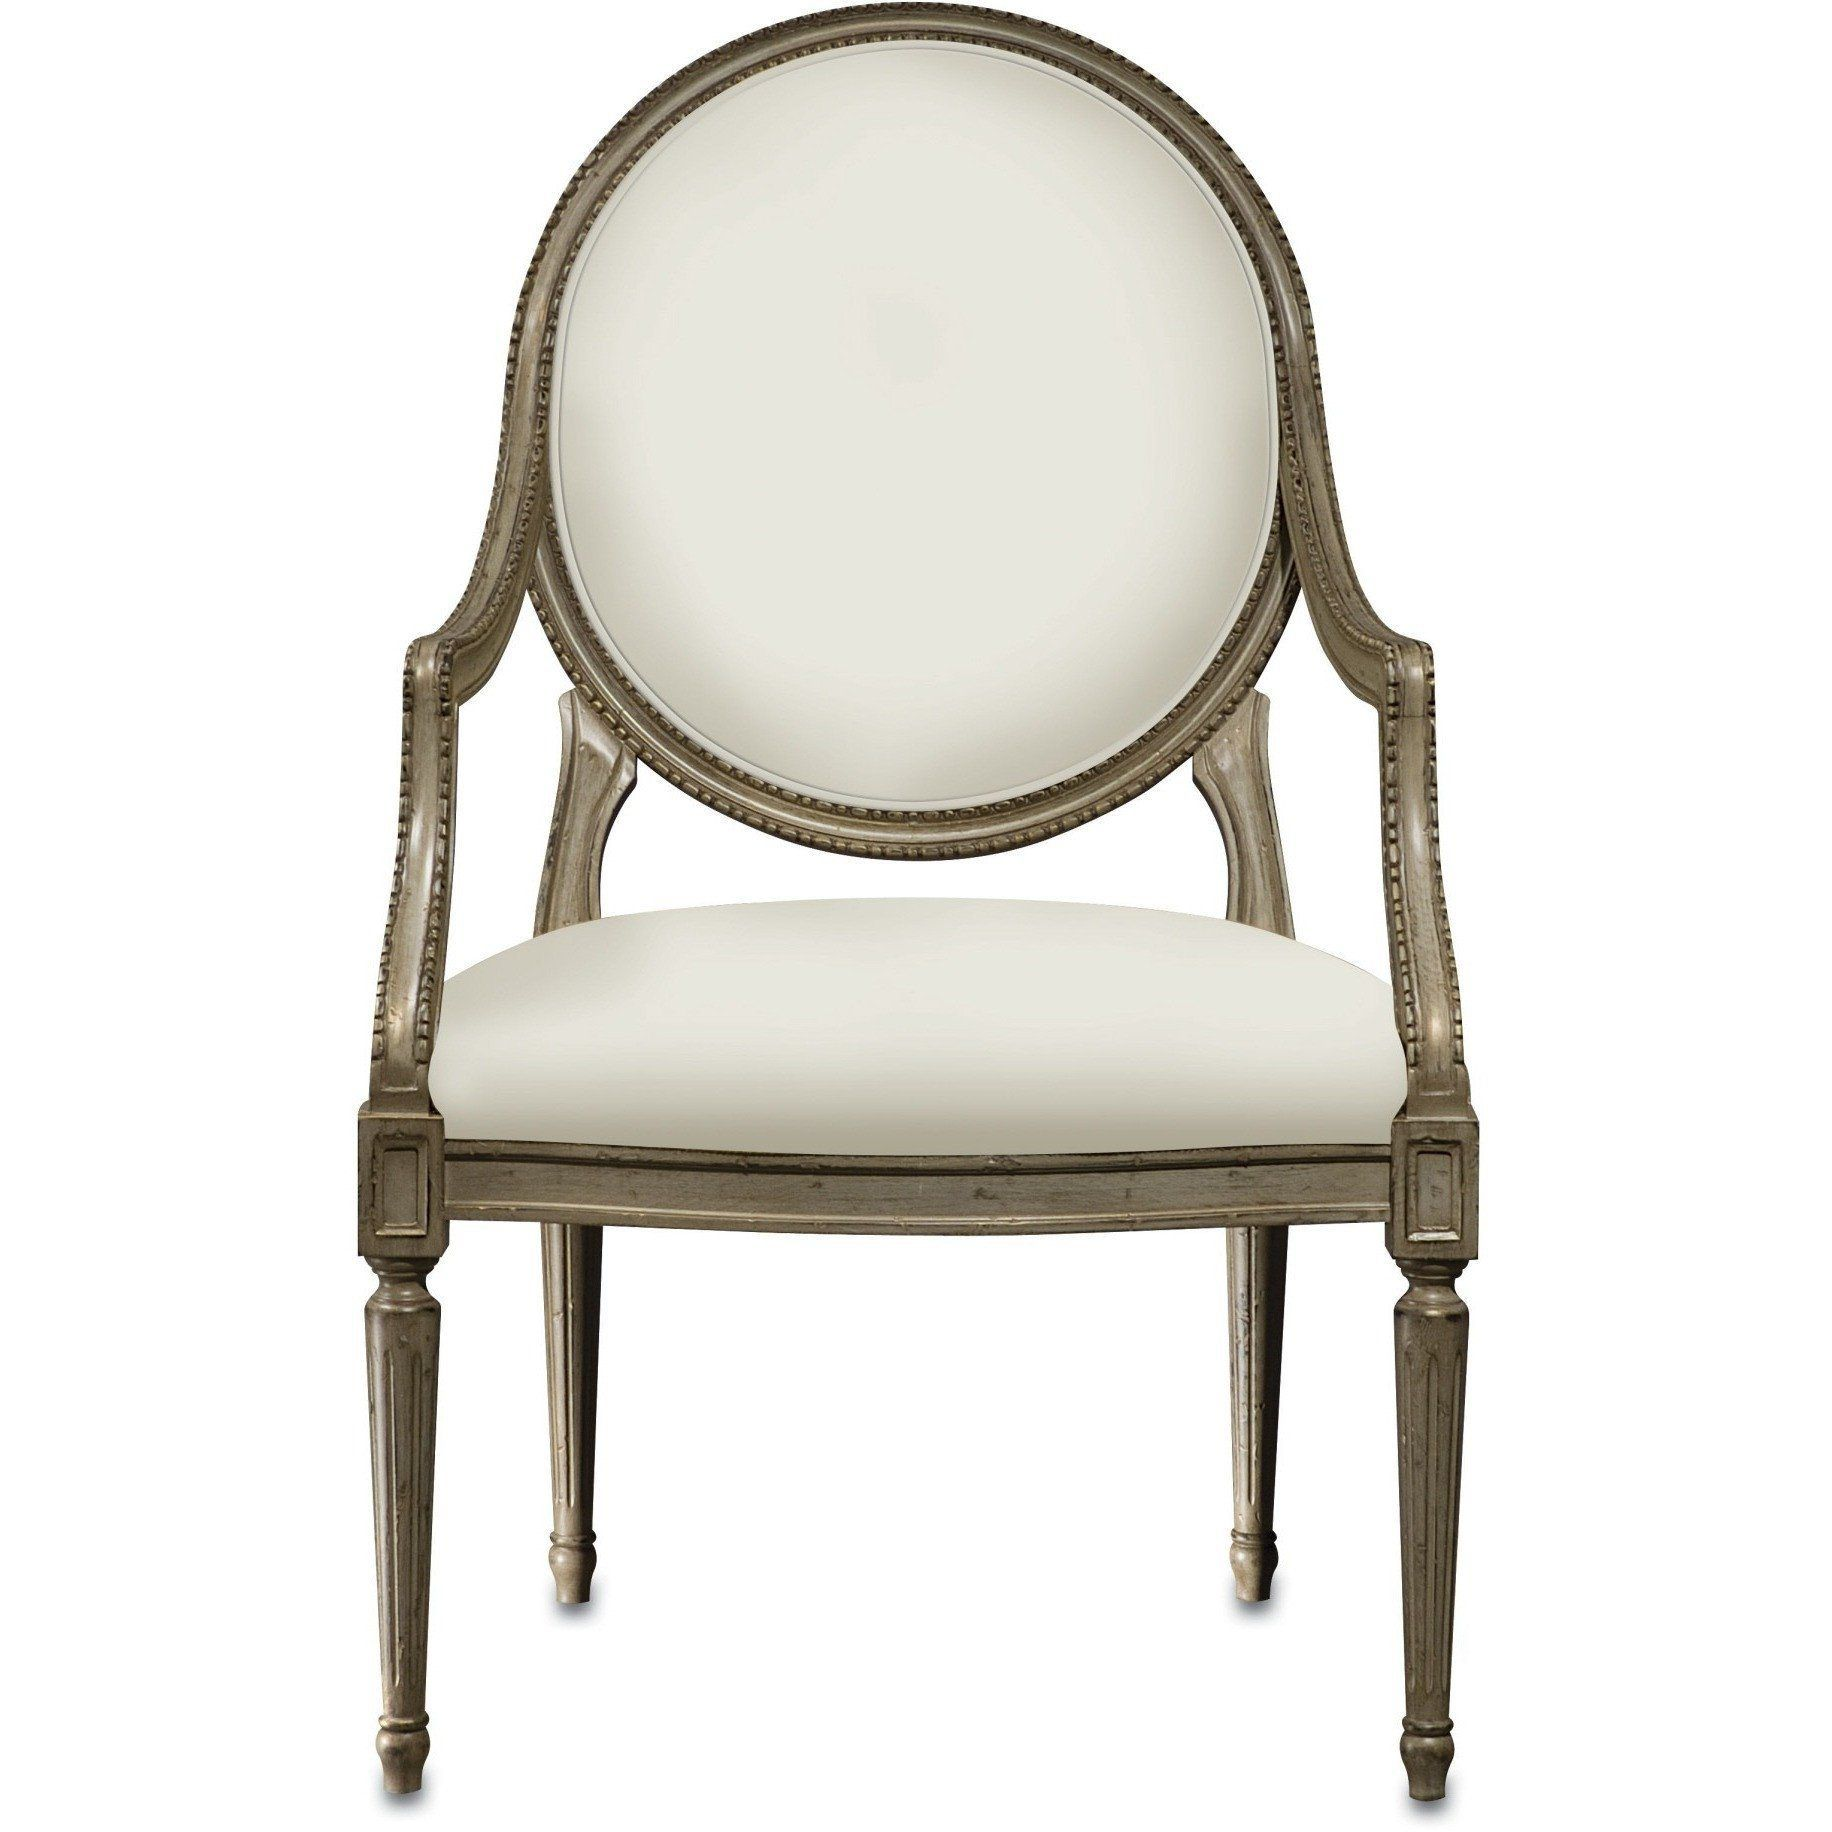 Currey and Company Antoinette Chair 7003 Currey